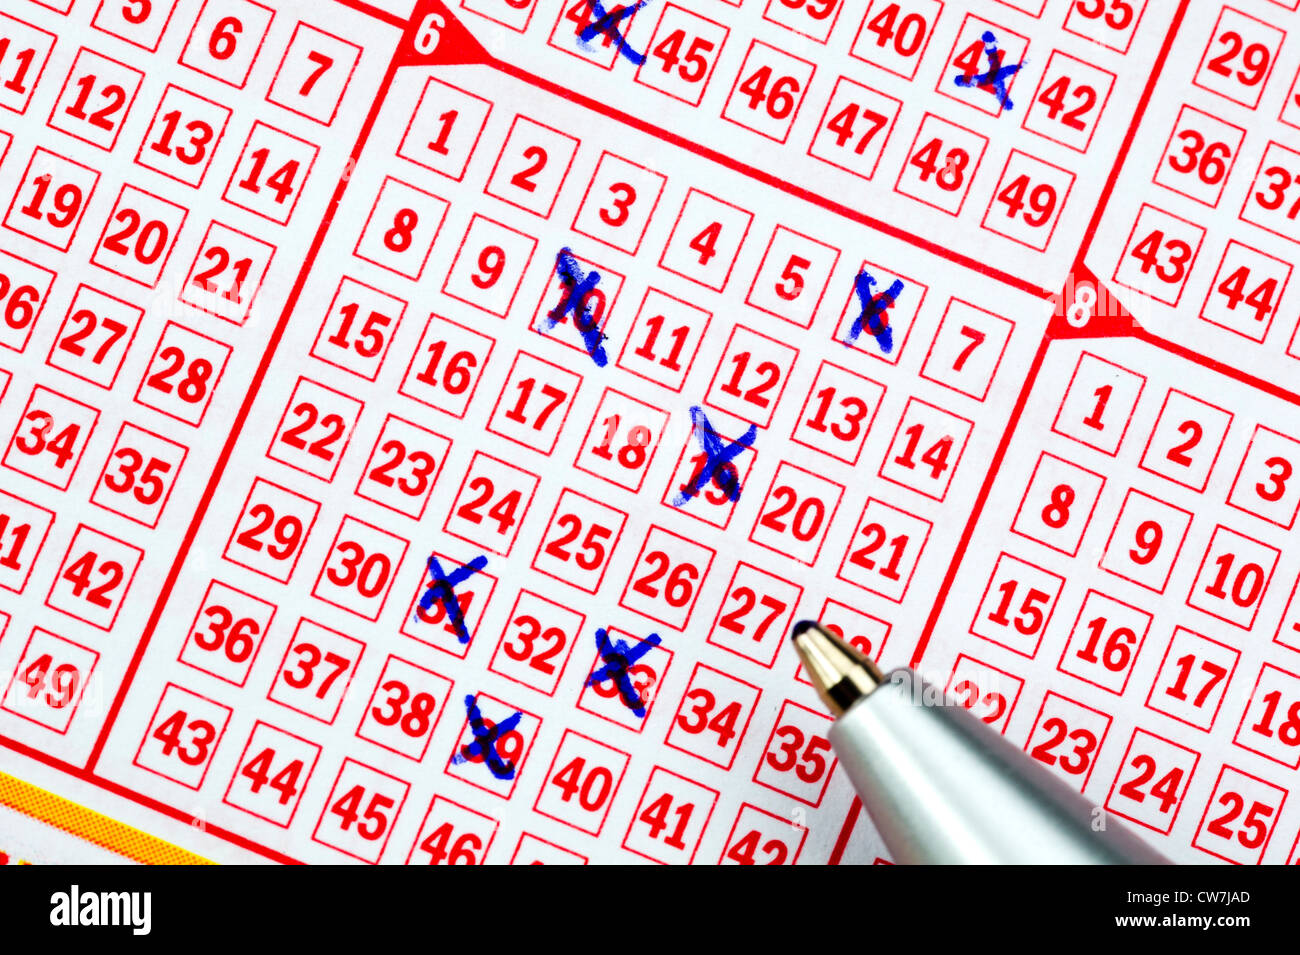 completed lottery ticket, Germany - Stock Image